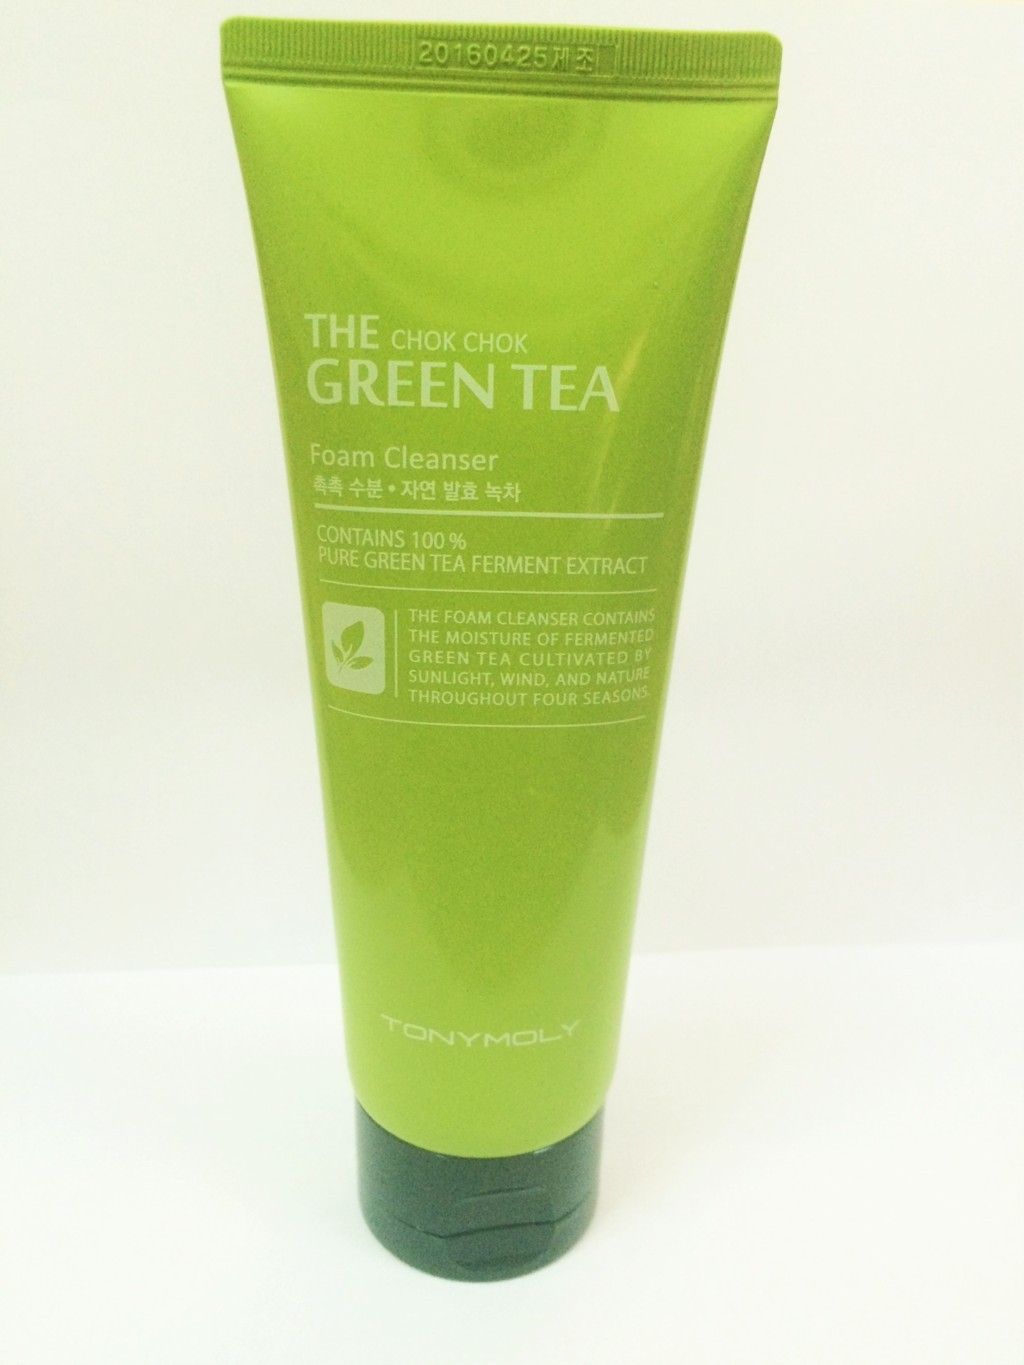 sua-rua-mat-the-chok-chok-green-tea-cleanser-foam-tonymoly